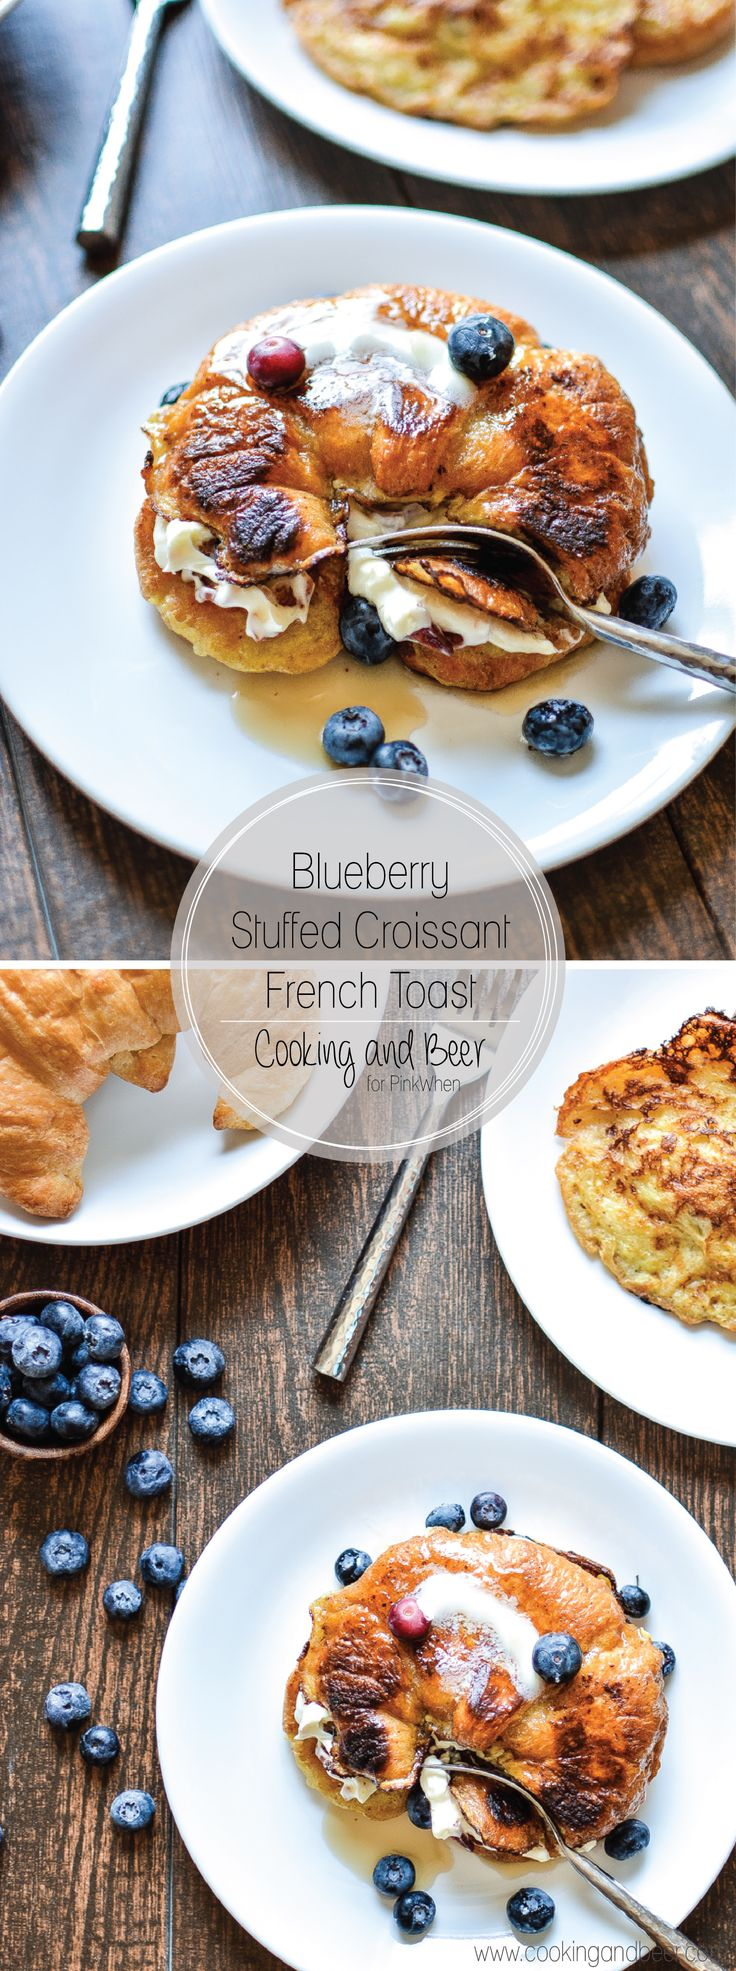 Blueberry Stuffed Croissant French Toast with Bacon: a weekend brunch indulgence that you've got to try! | www.cookingandbeer.com